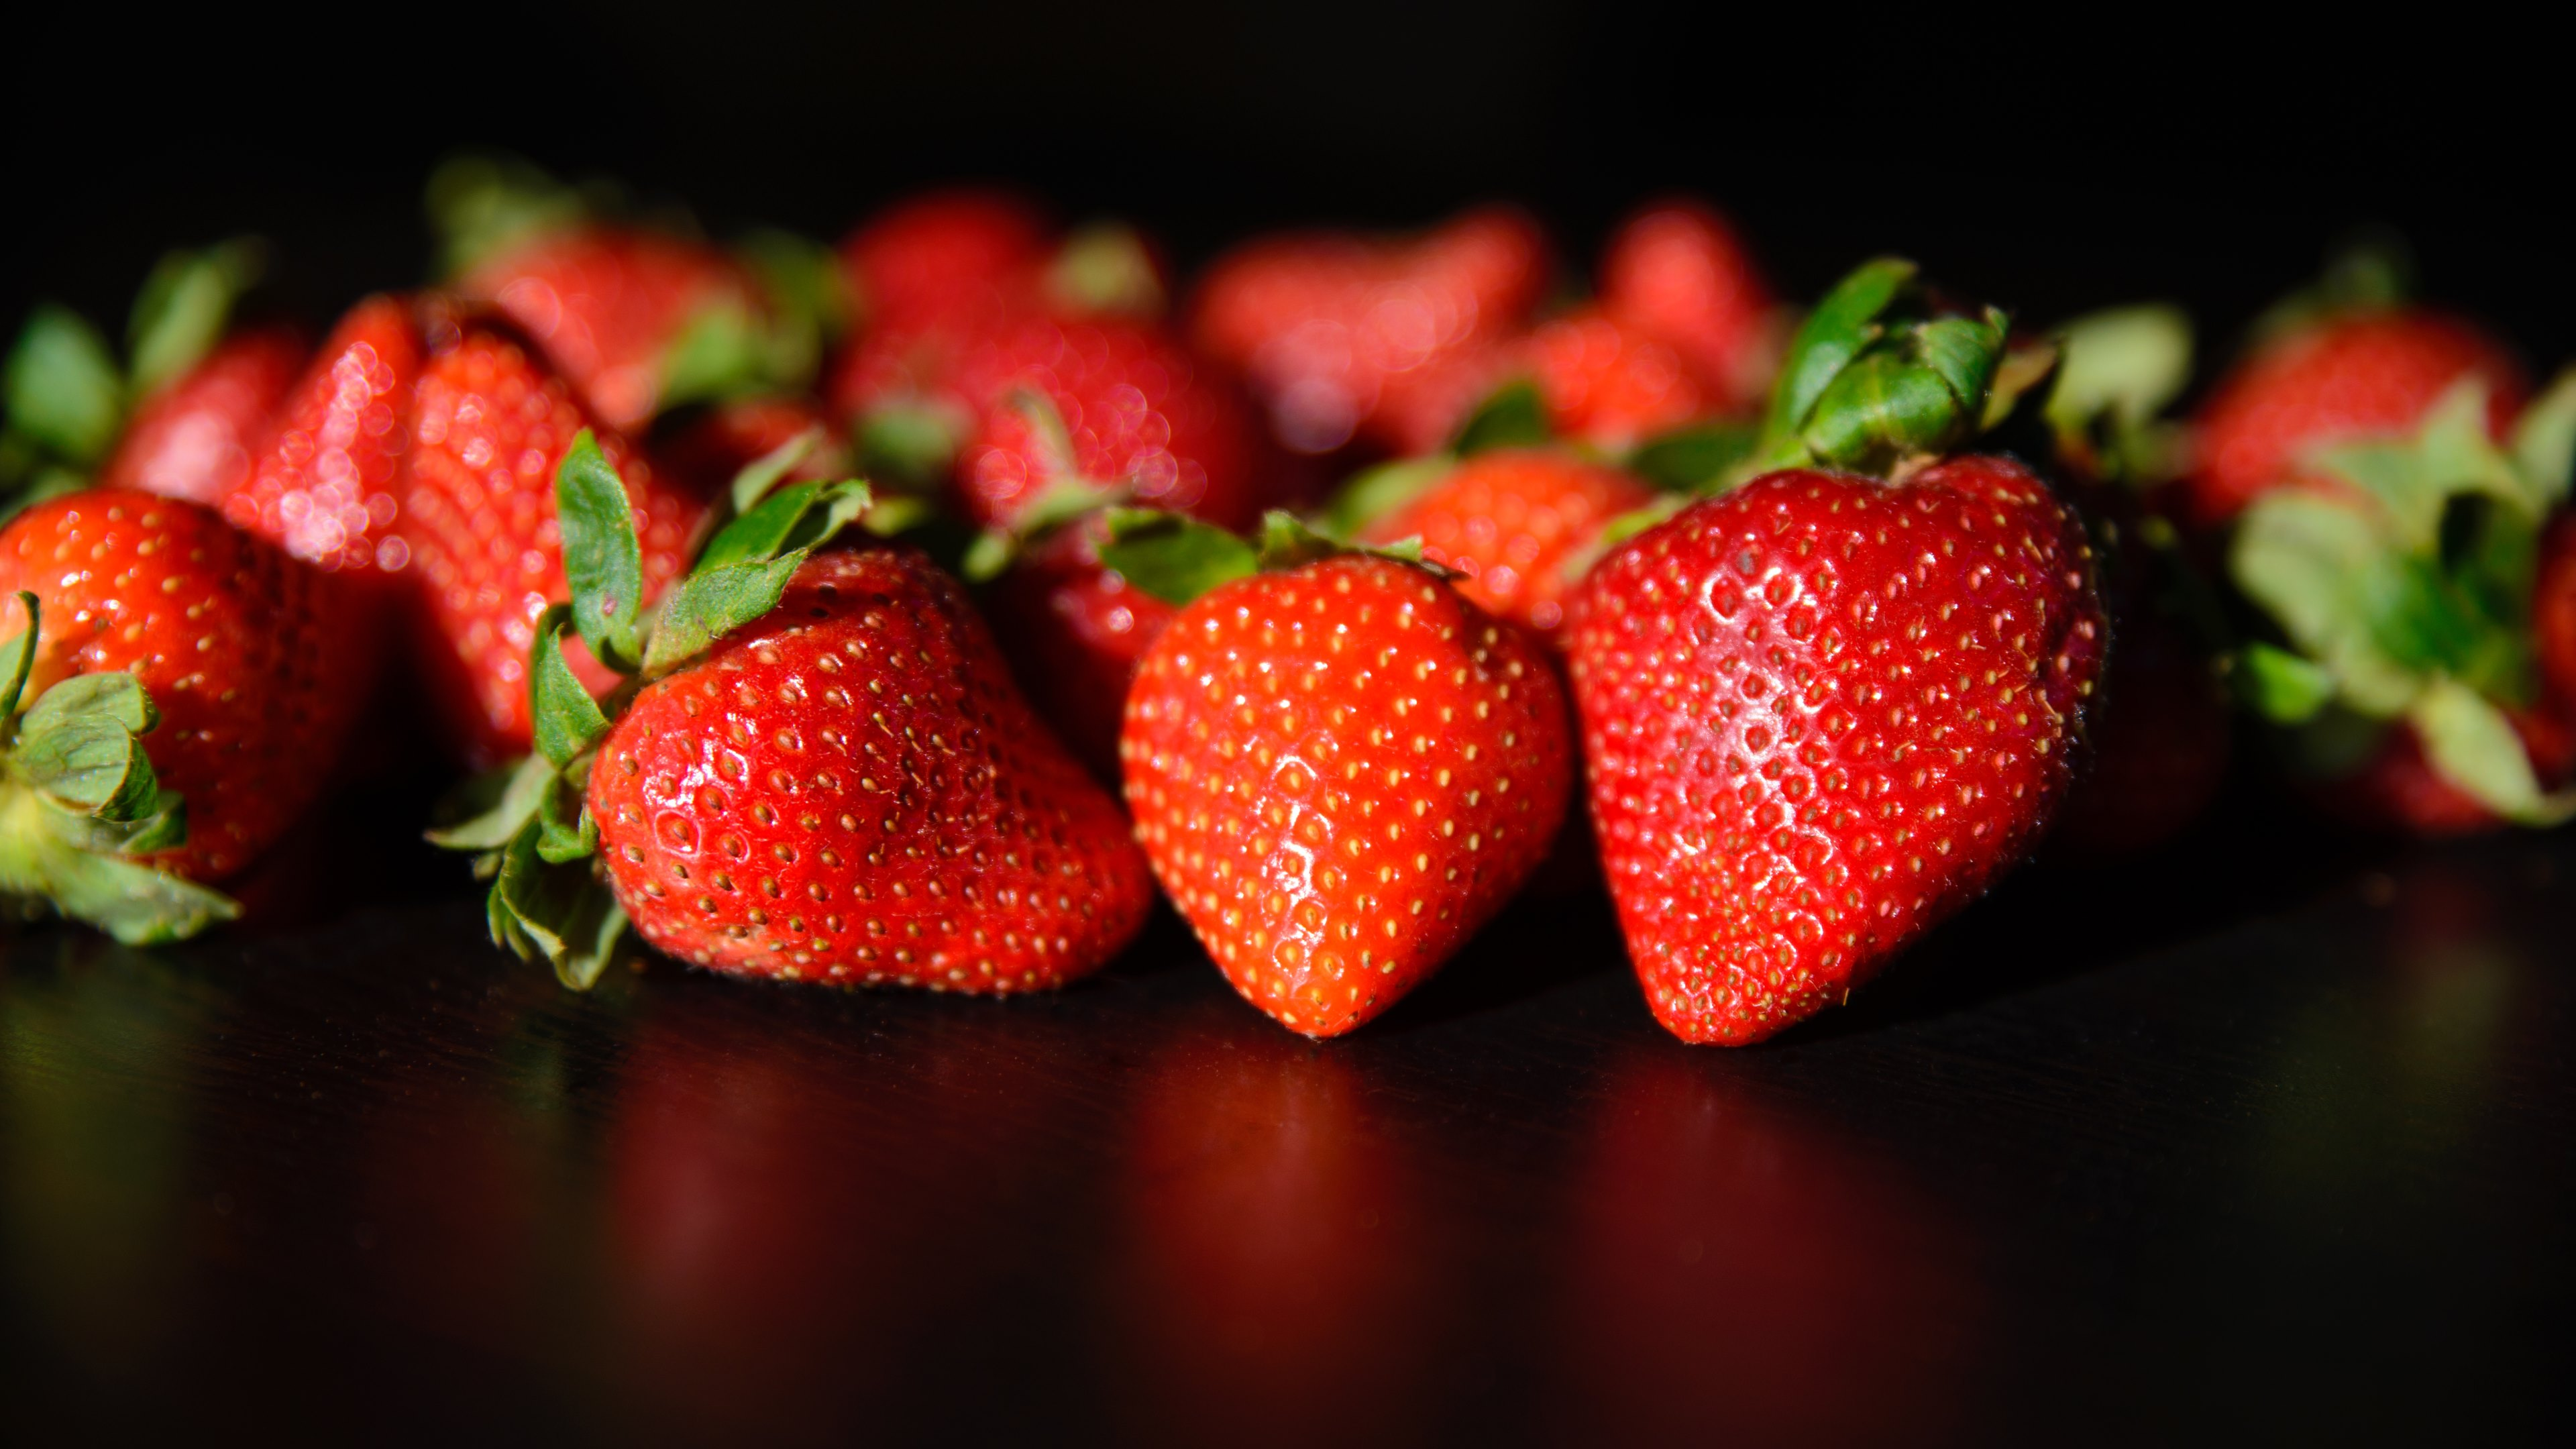 strawberries fruits wallpaper hd wallpapers